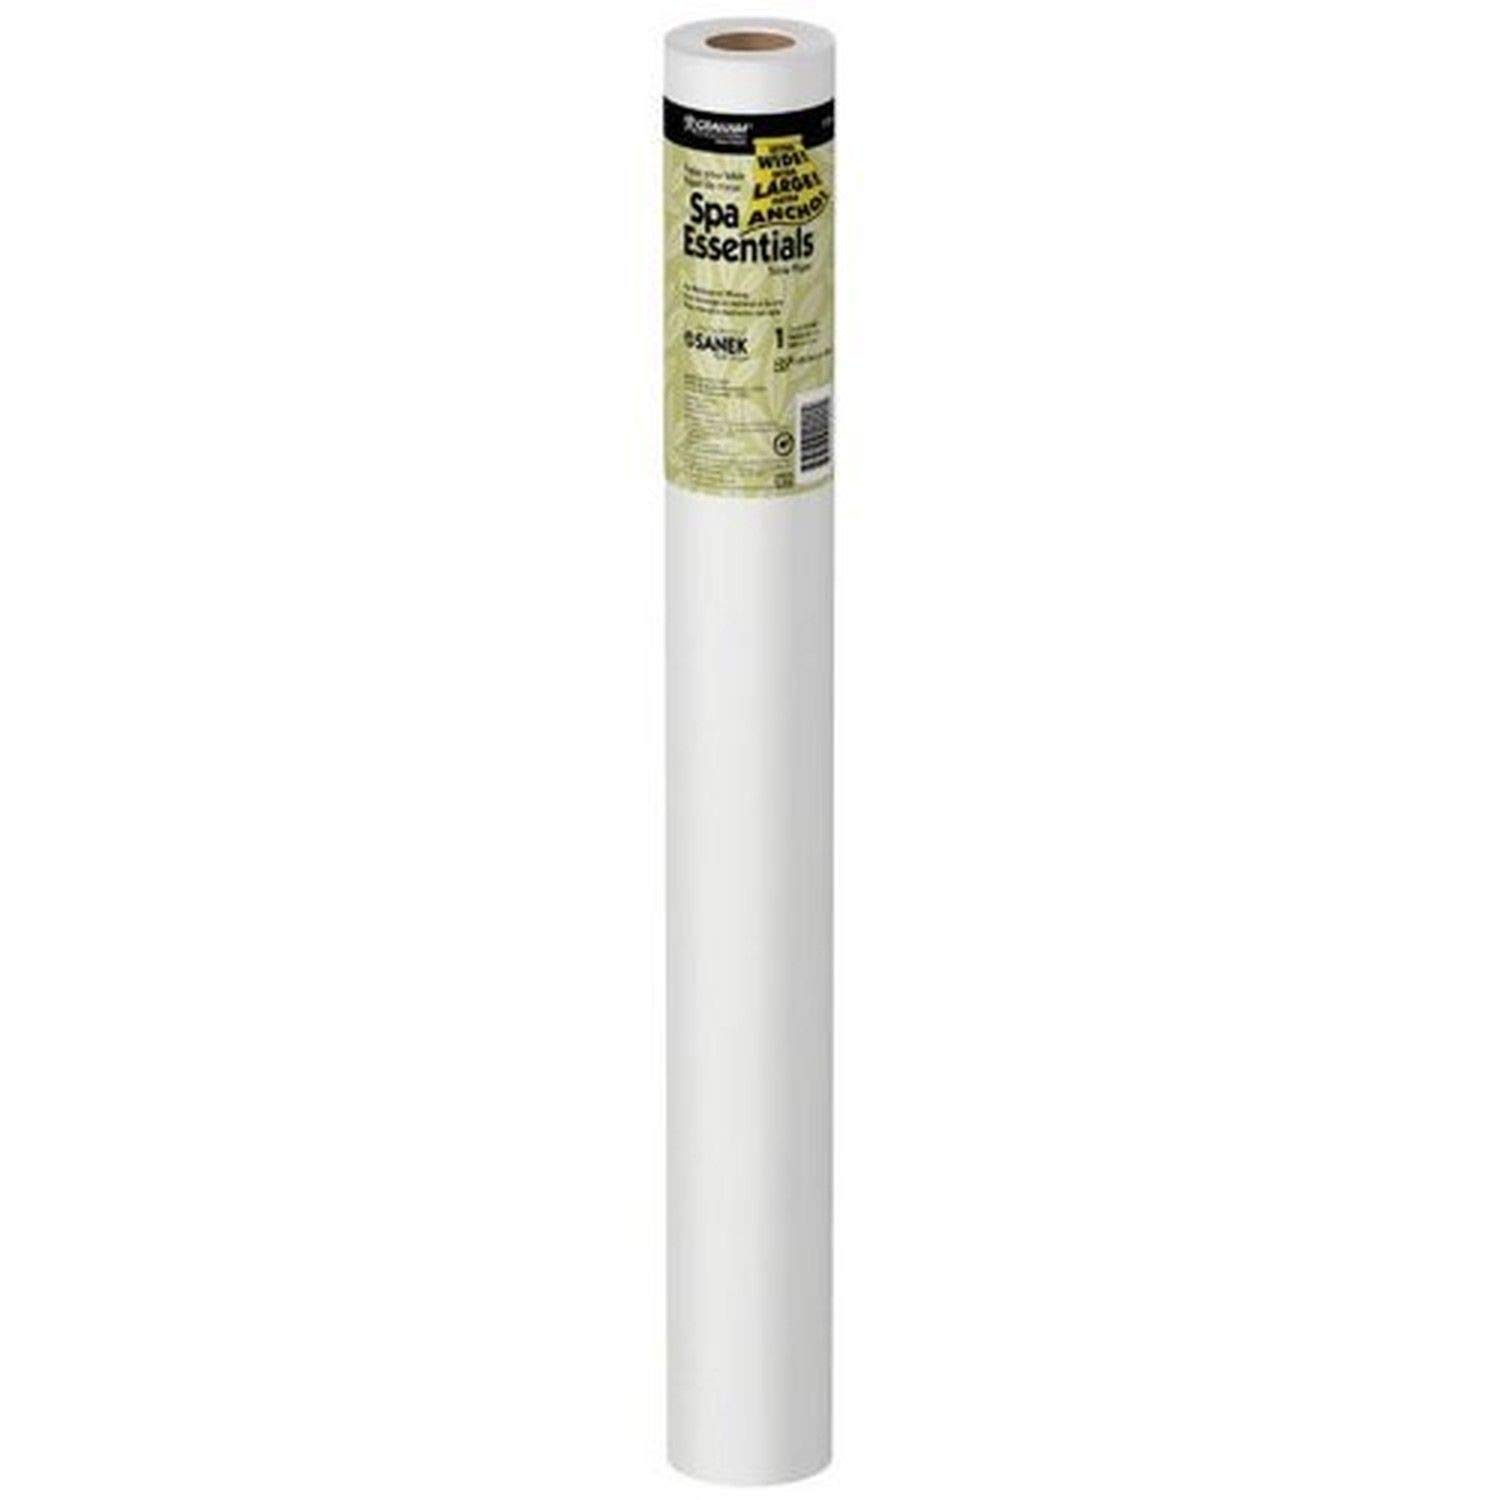 Graham Medical 51824 Spa Essentials Quality Table Paper, Smooth, 27'' Width, 225' Length, White (Pack of 12)